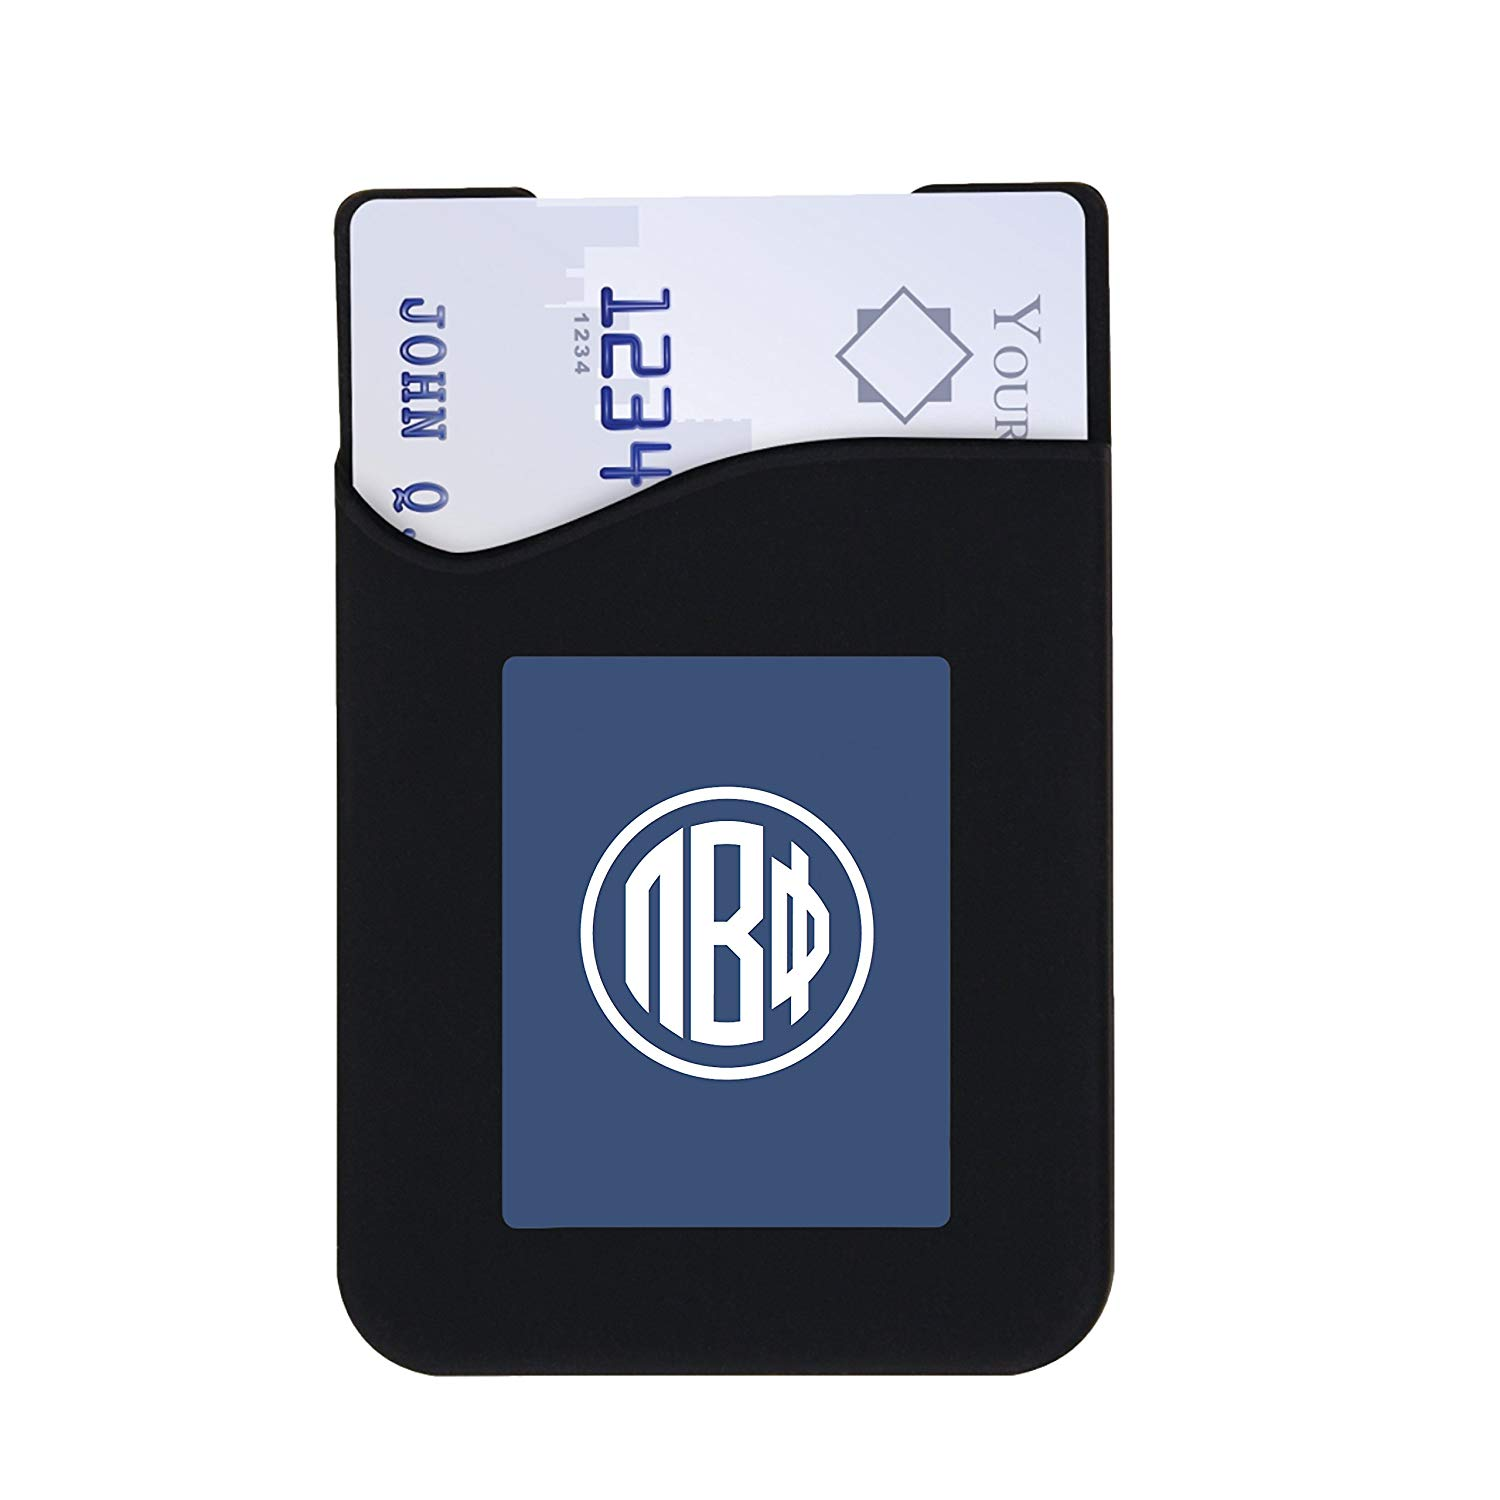 Pi Beta Phi Phone Wallets with 3M Adhesive for Phones & Cases (Chic Designs: Floral, Greek Monogram & Greek Letters)645759575159 (Greek Monogram)